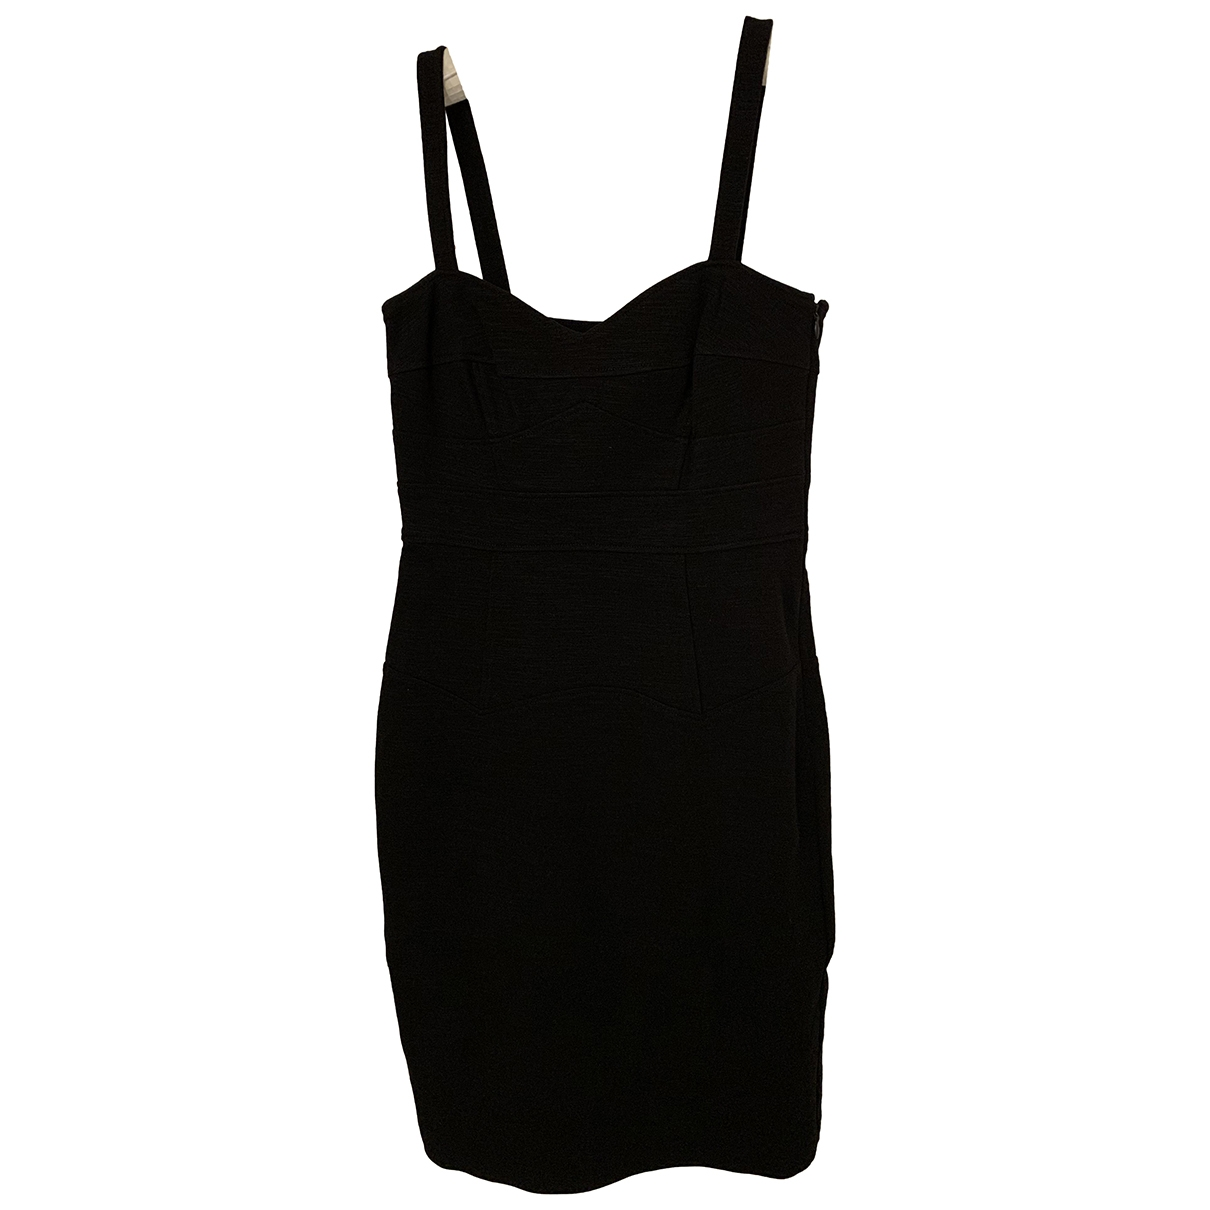 Diane Von Furstenberg \N Black dress for Women 4 US